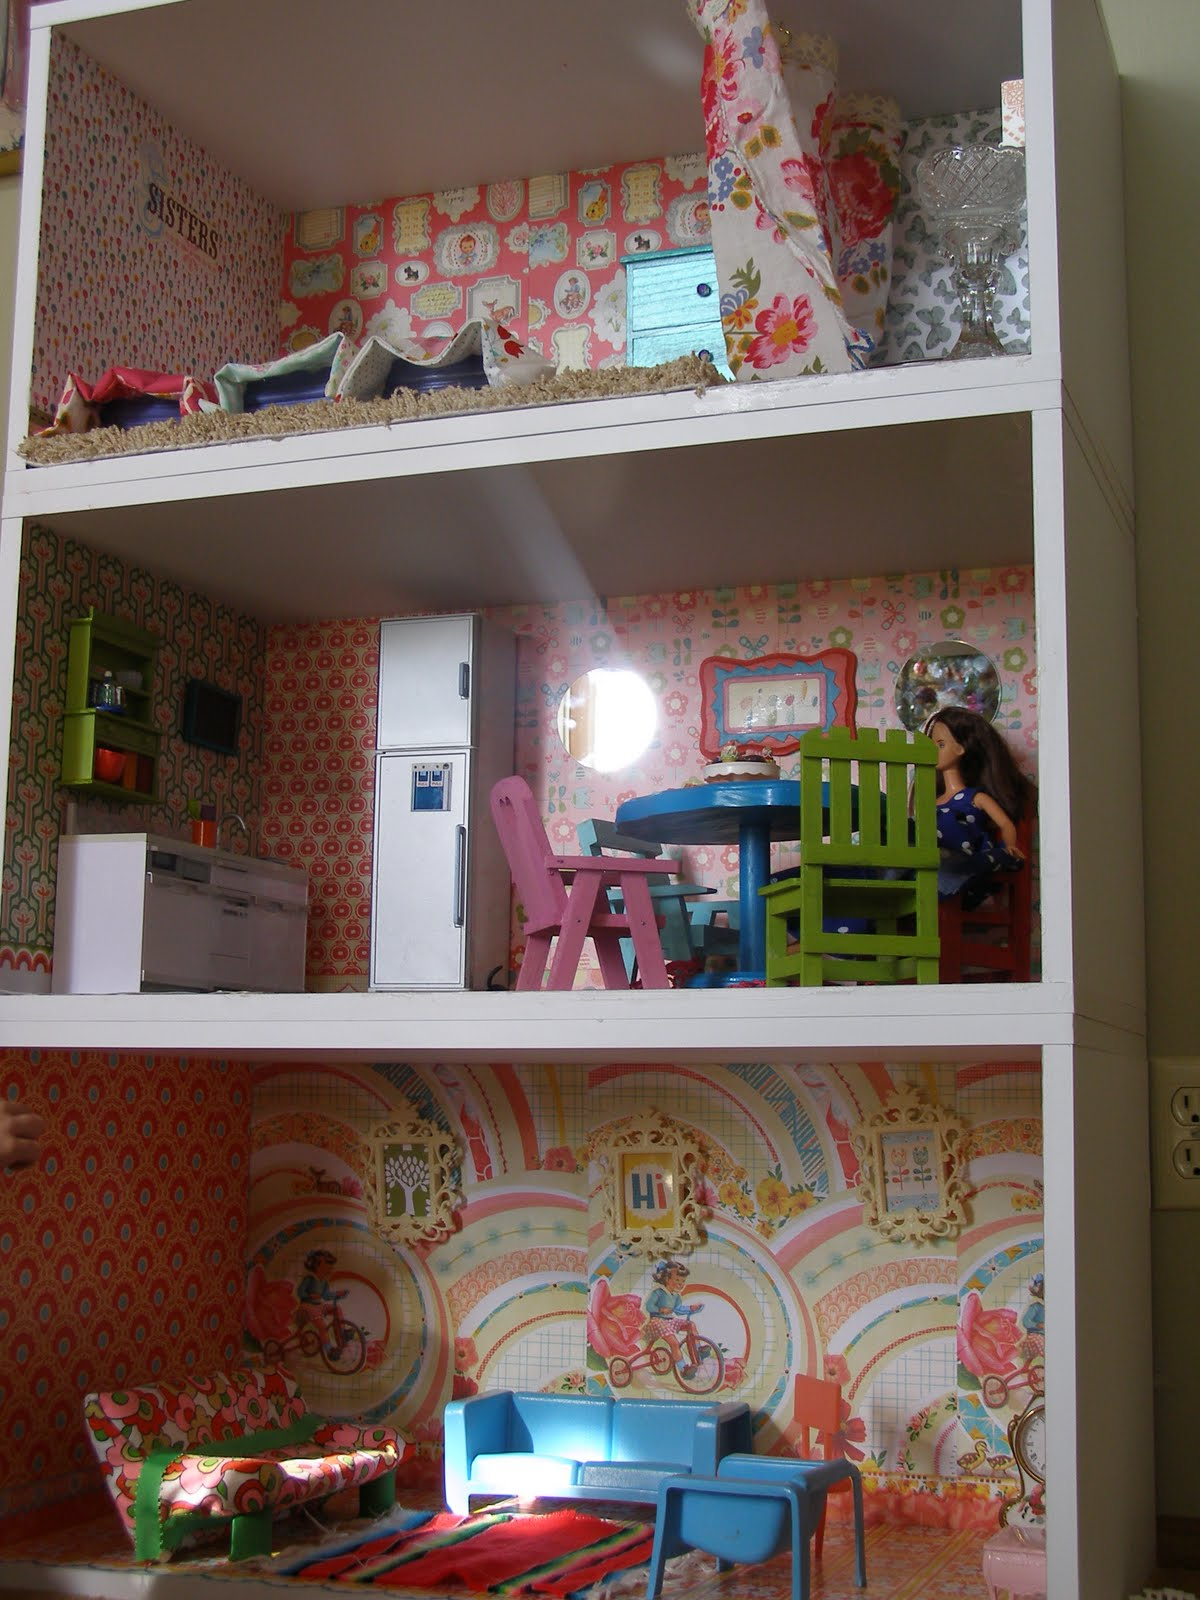 Design Make Your Own Dollhouse project wooden dollhouses are expensive make your own in a series of posts she tells us everything used to this amazing dollhouse for